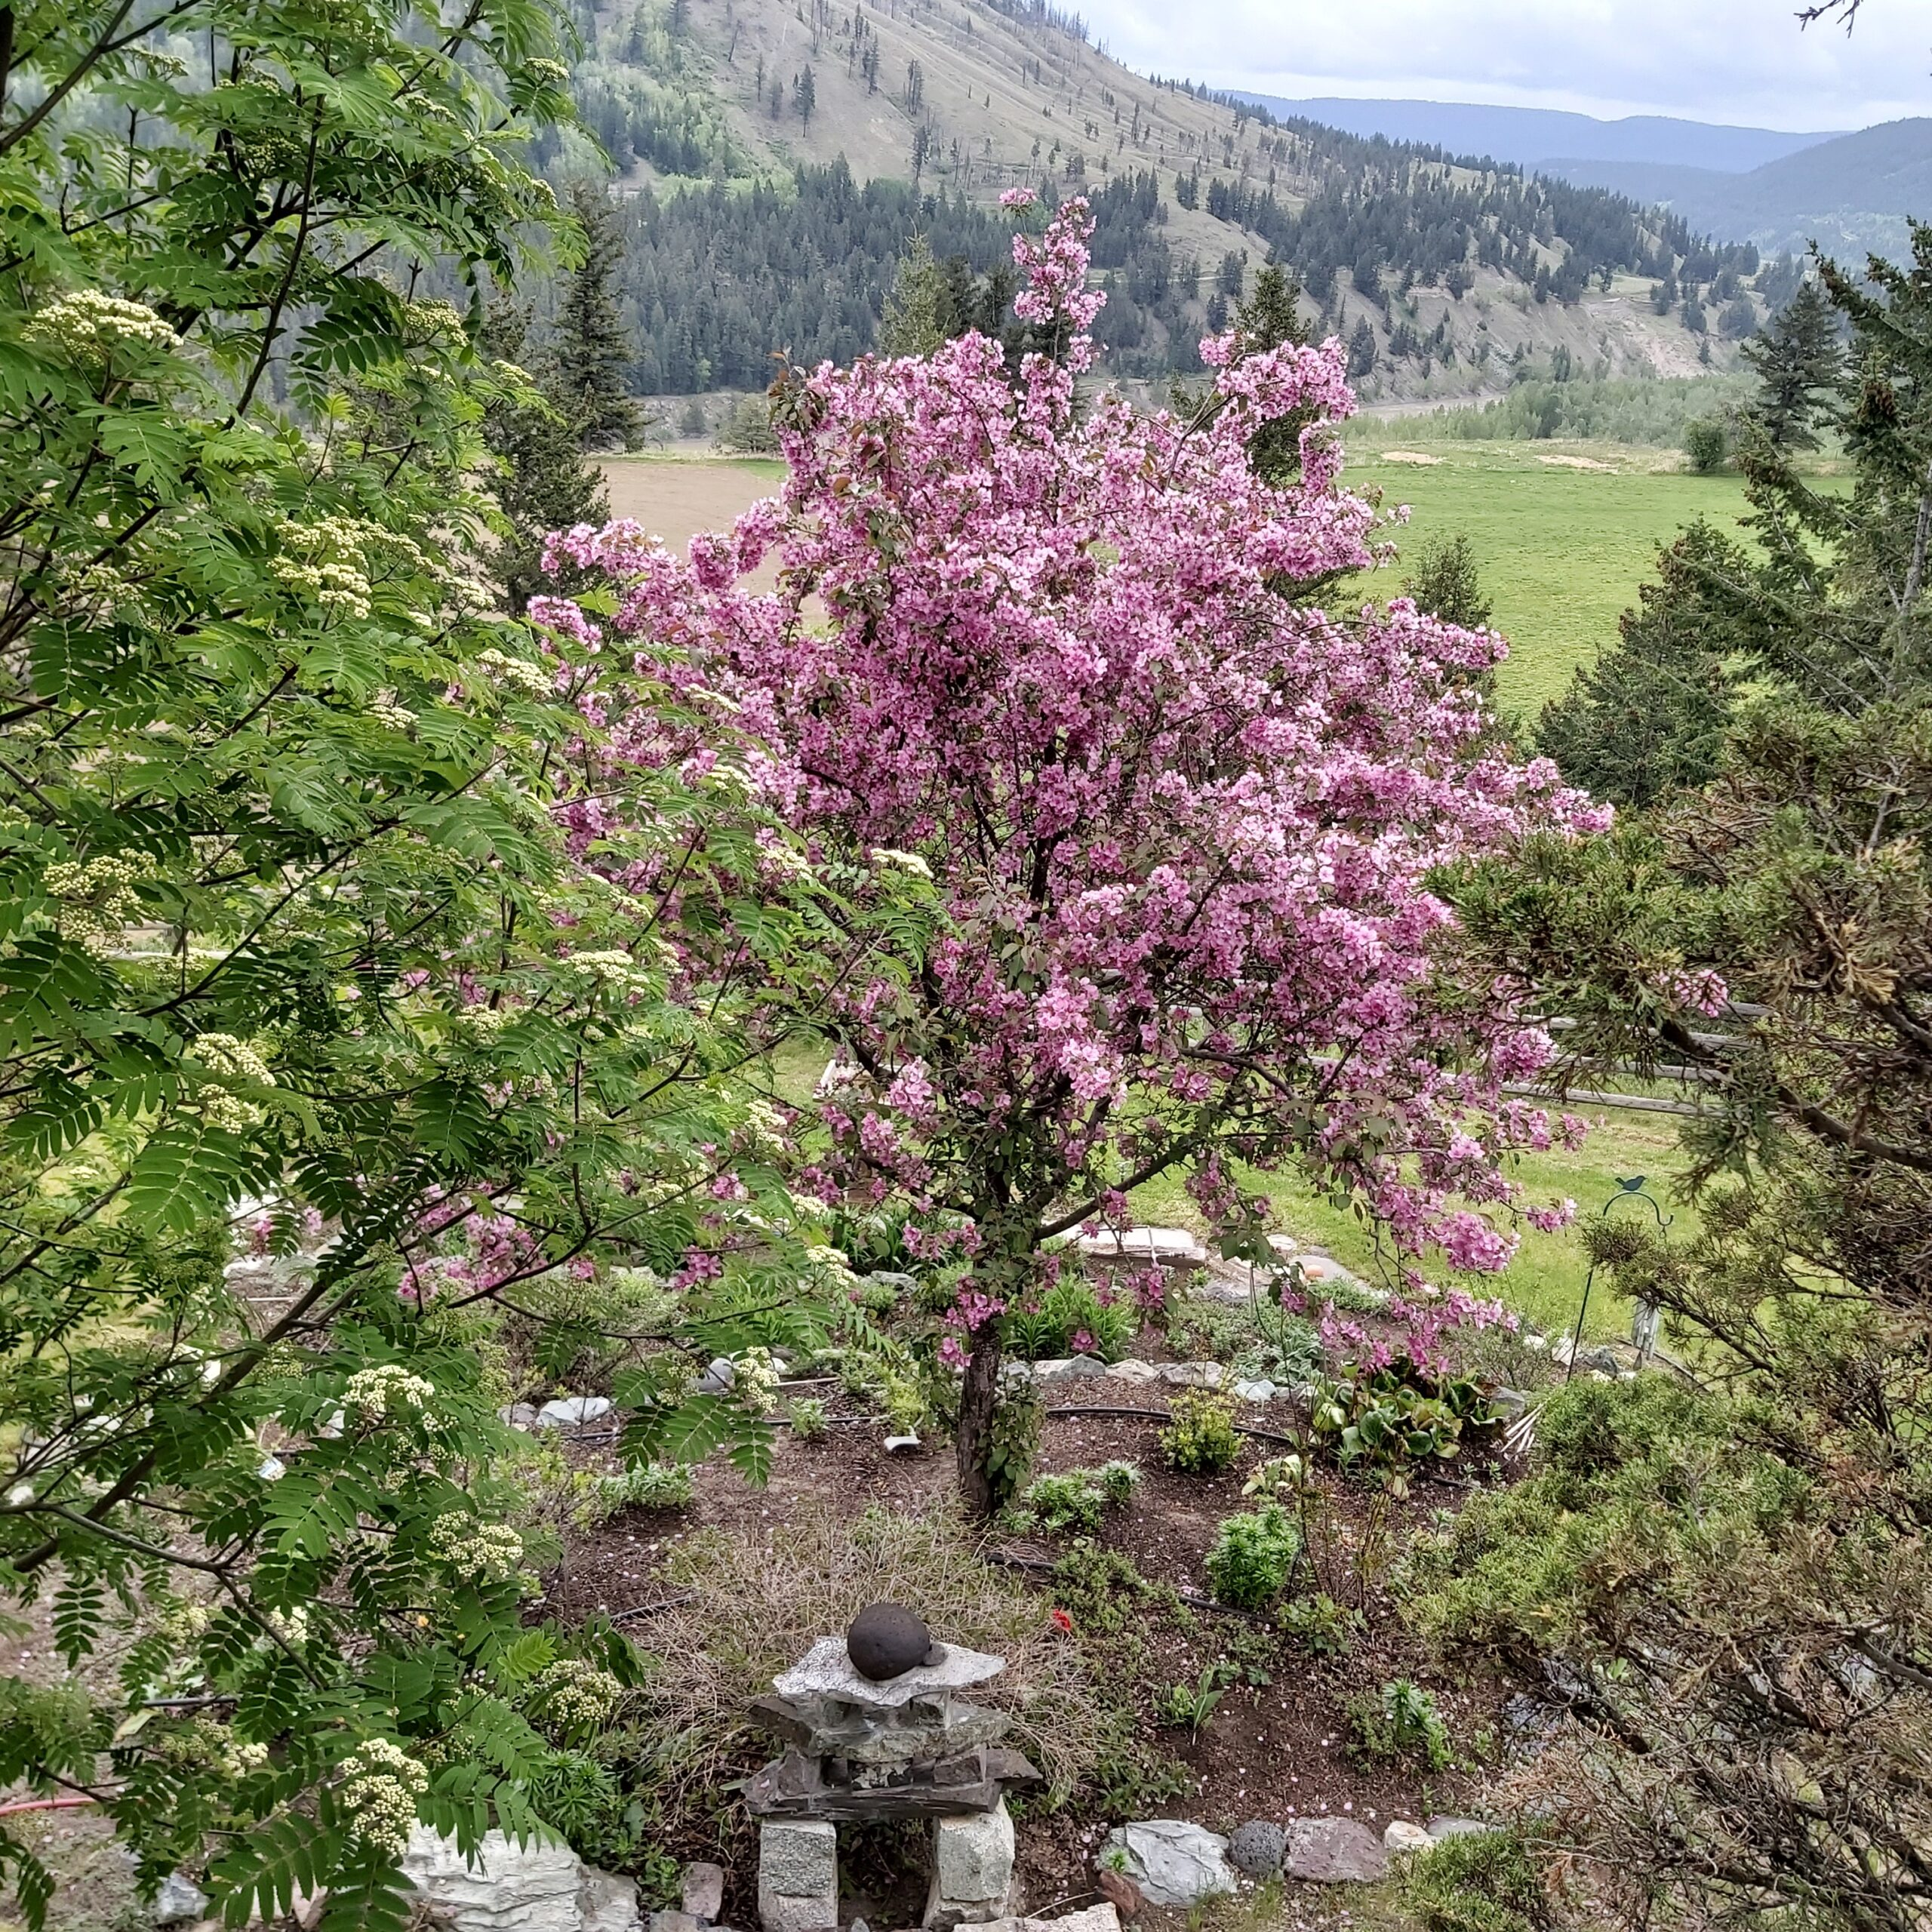 spring flowering trees in front of mountains